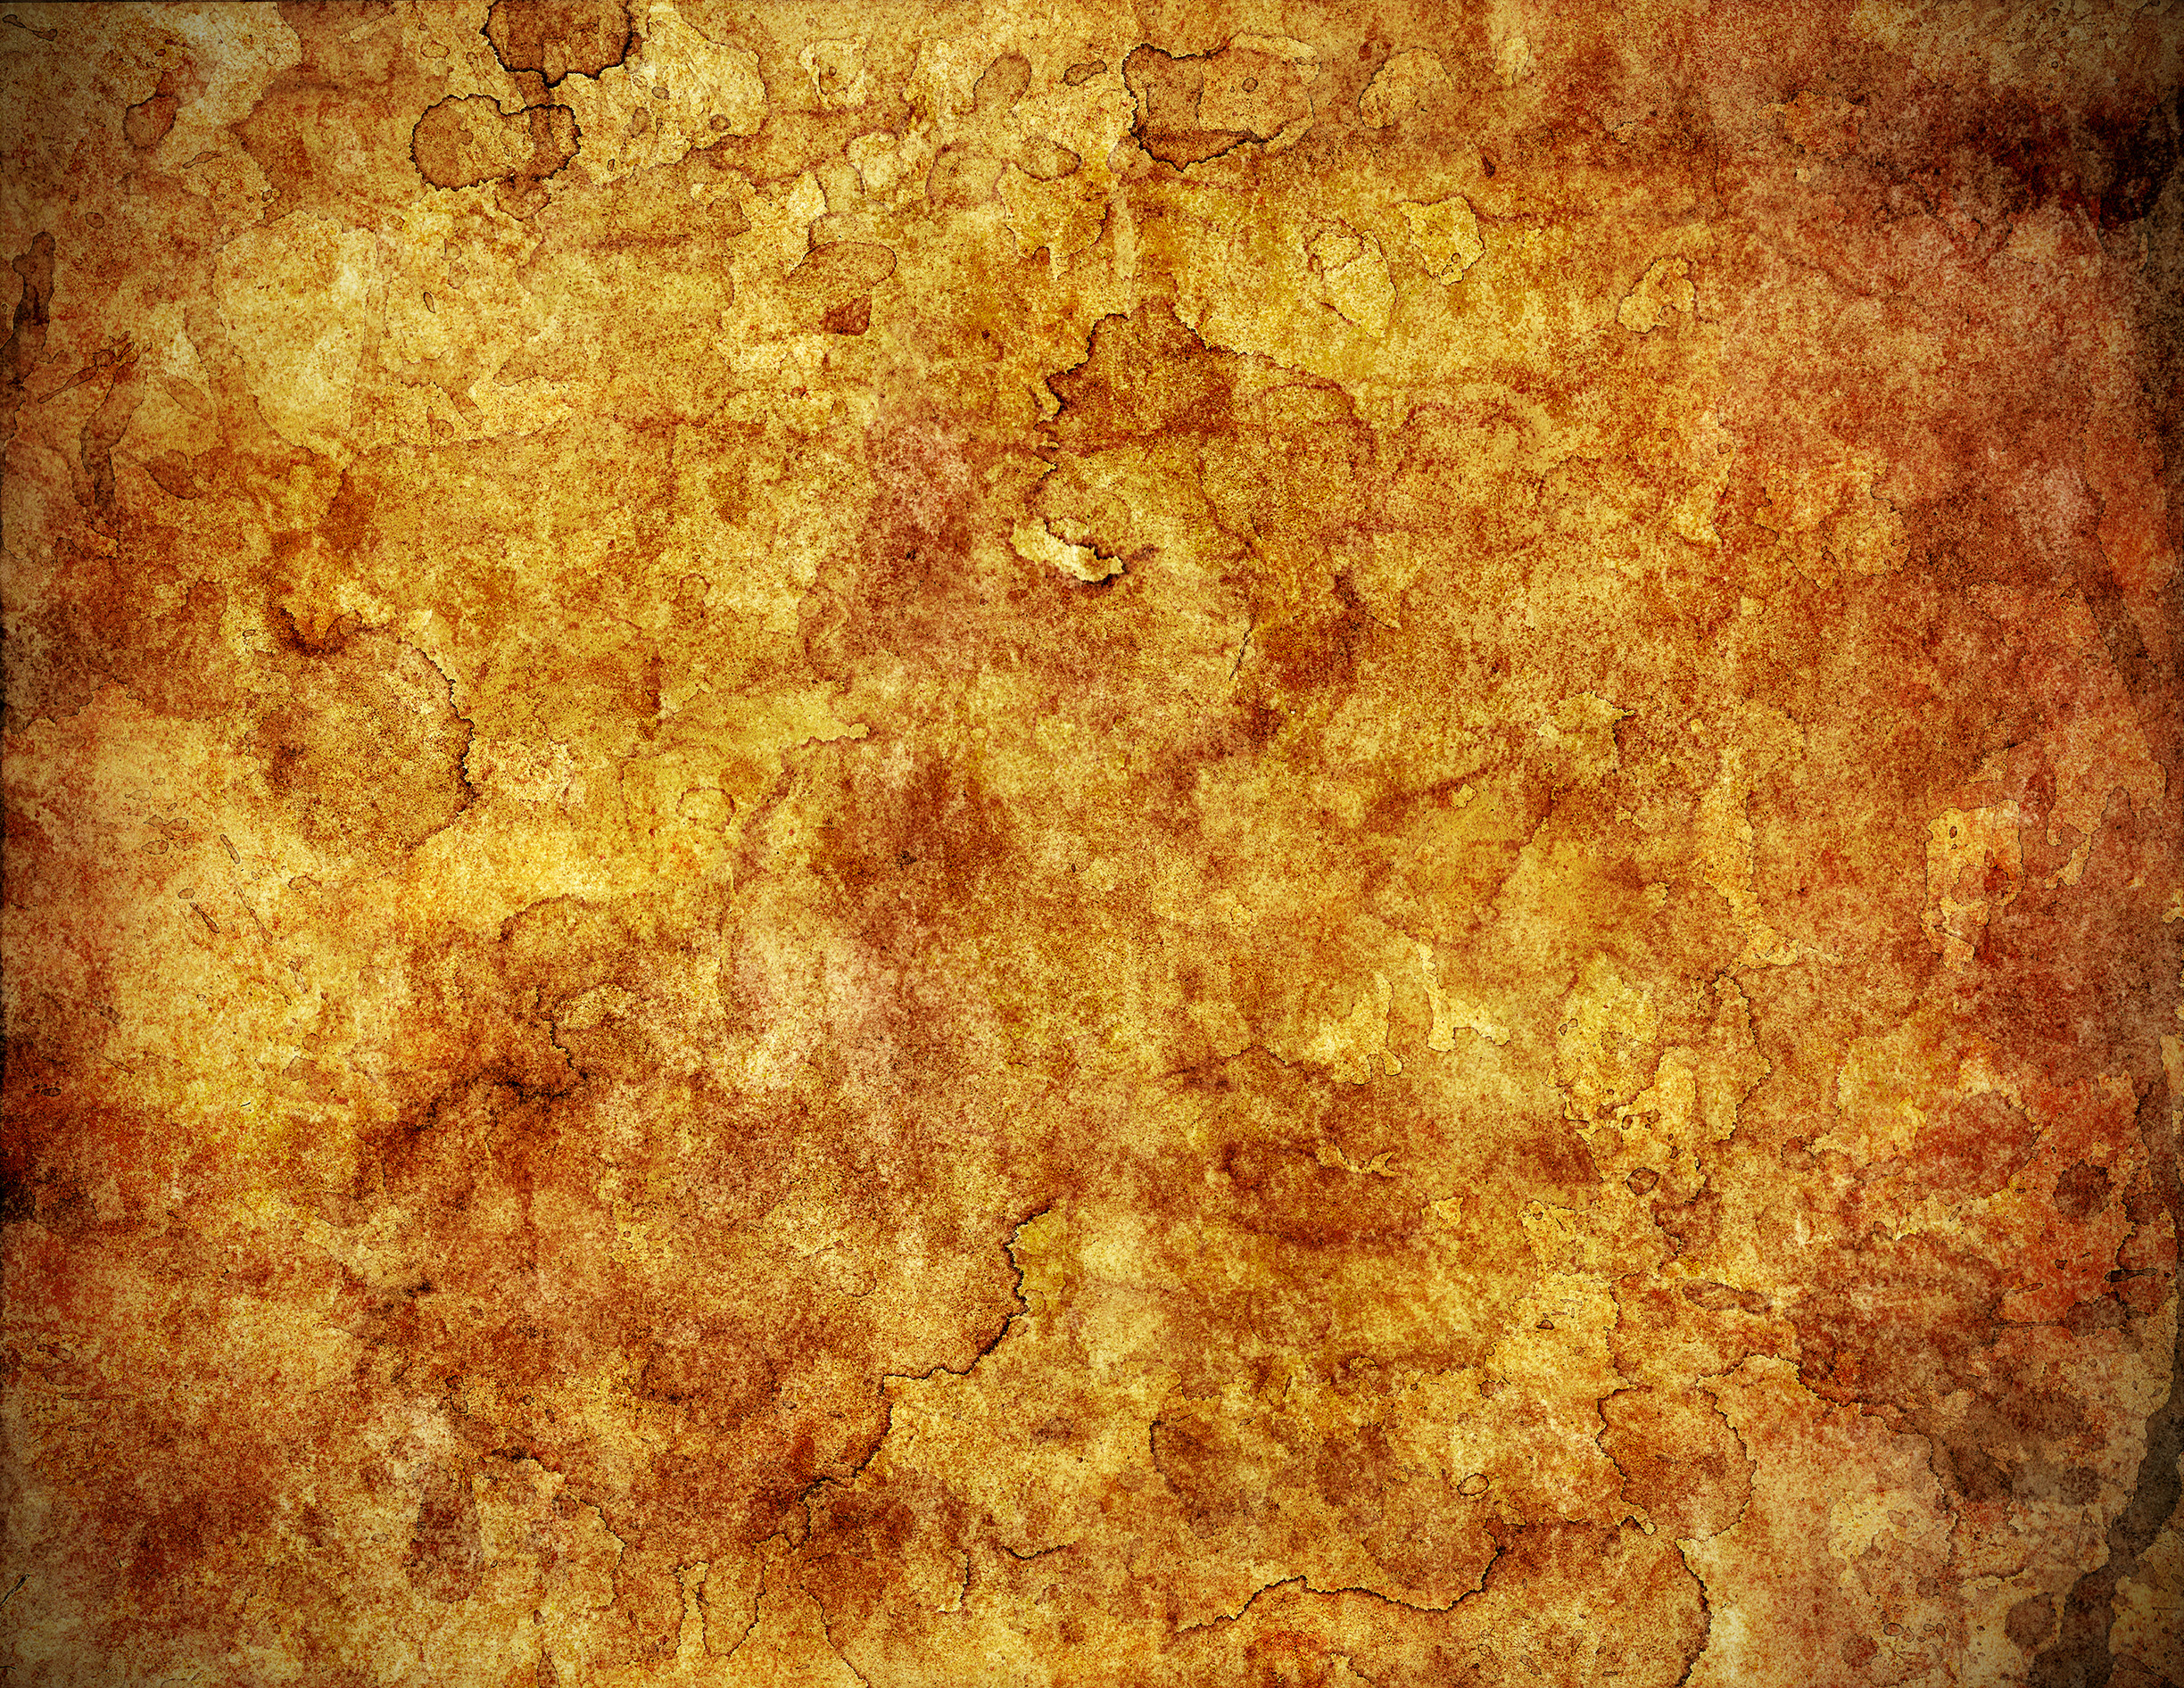 Beautiful Wallpaper High Quality Texture - DRA-SandStone-1-FT1  Perfect Image Reference_95736.jpg?fit\u003d2448%2C1892